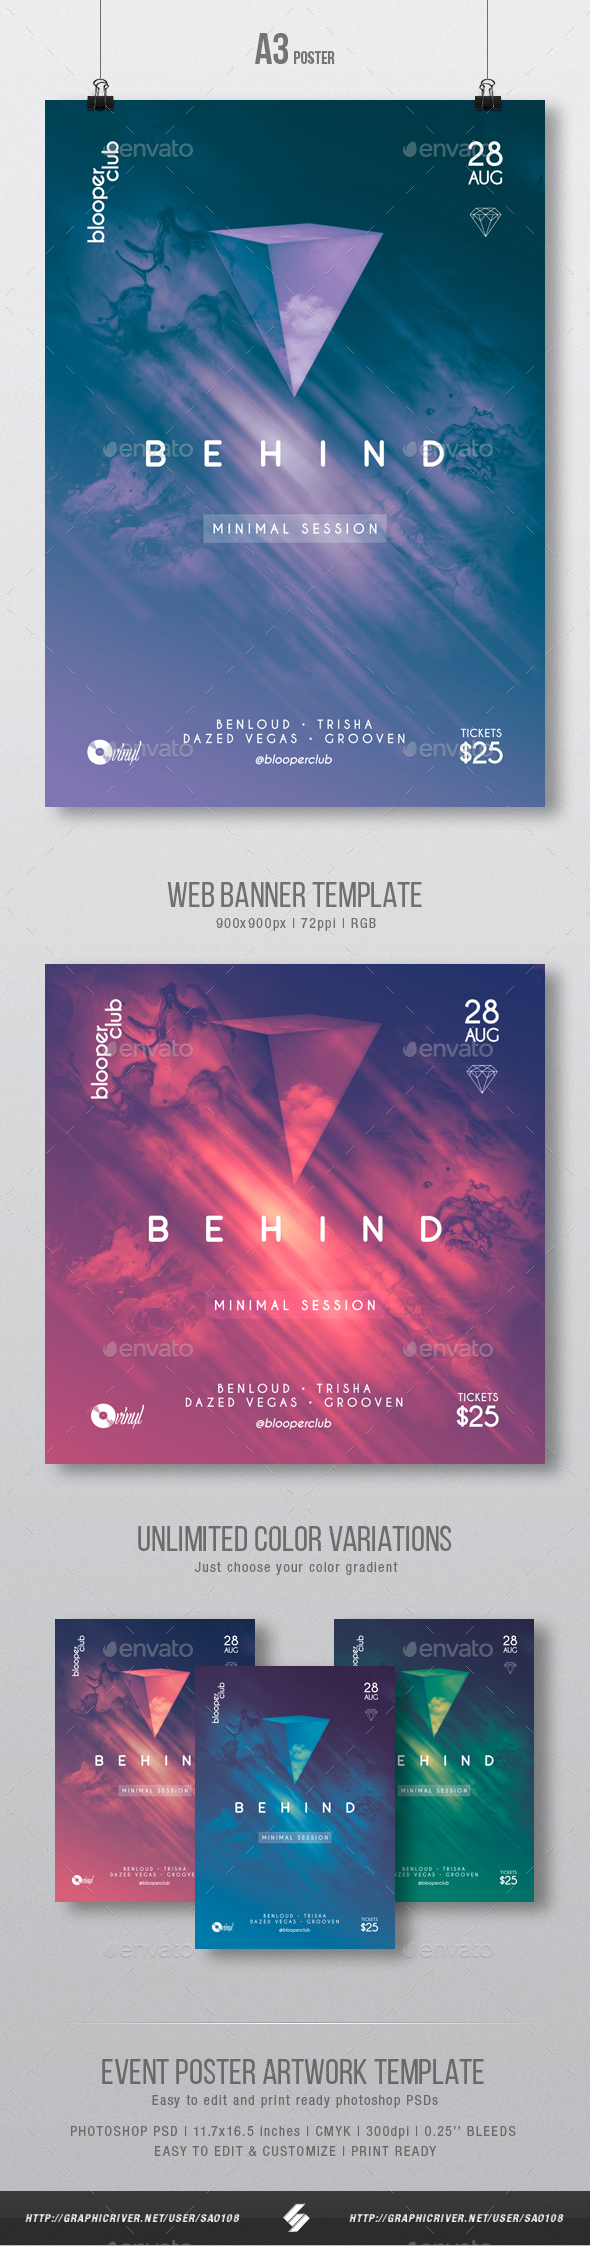 Behind - Minimal Party Poster / Flyer Artwork Template A3 - Clubs & Parties Events